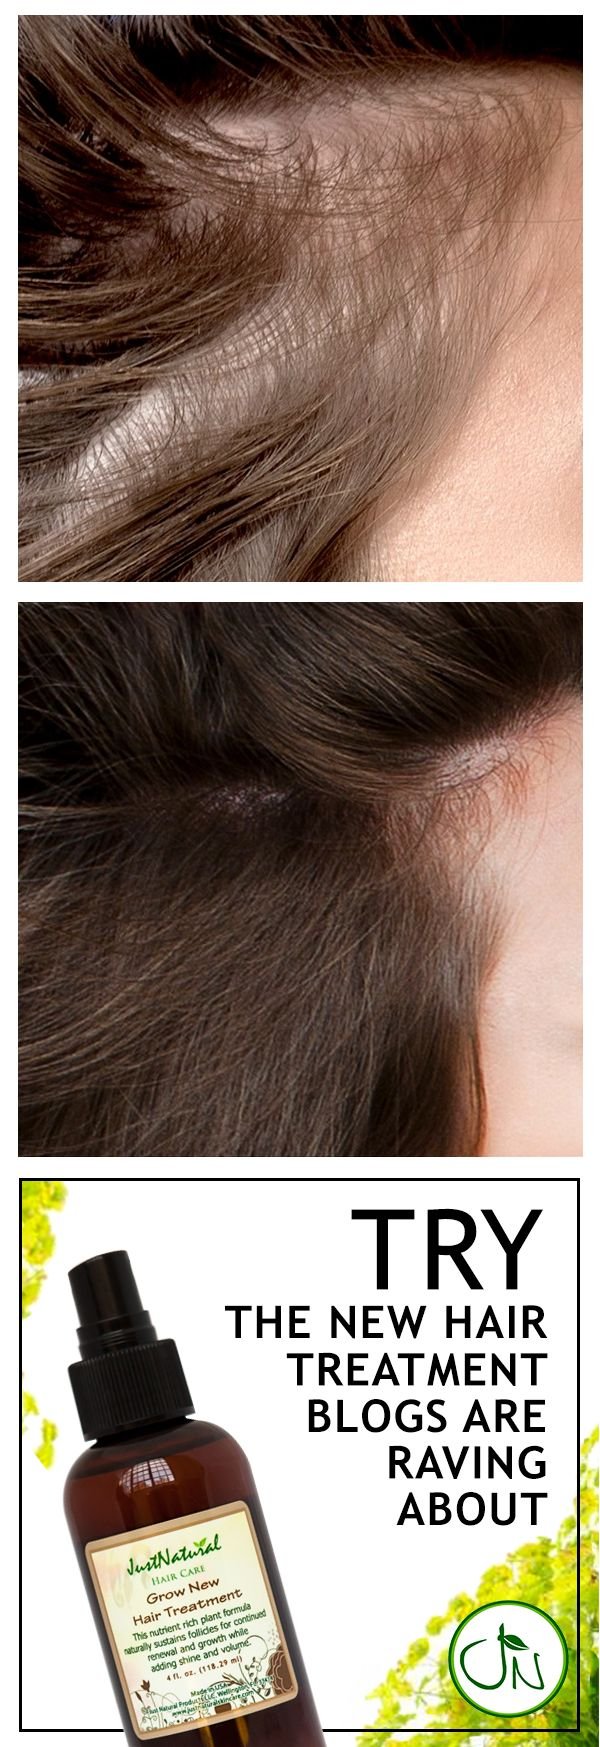 Encourage your hair to grow faster, longer and fuller with less breakage with Just Natural's Grow New Hair treatment. Find it at https://justnutritive.com/gnew-hair-therapy/